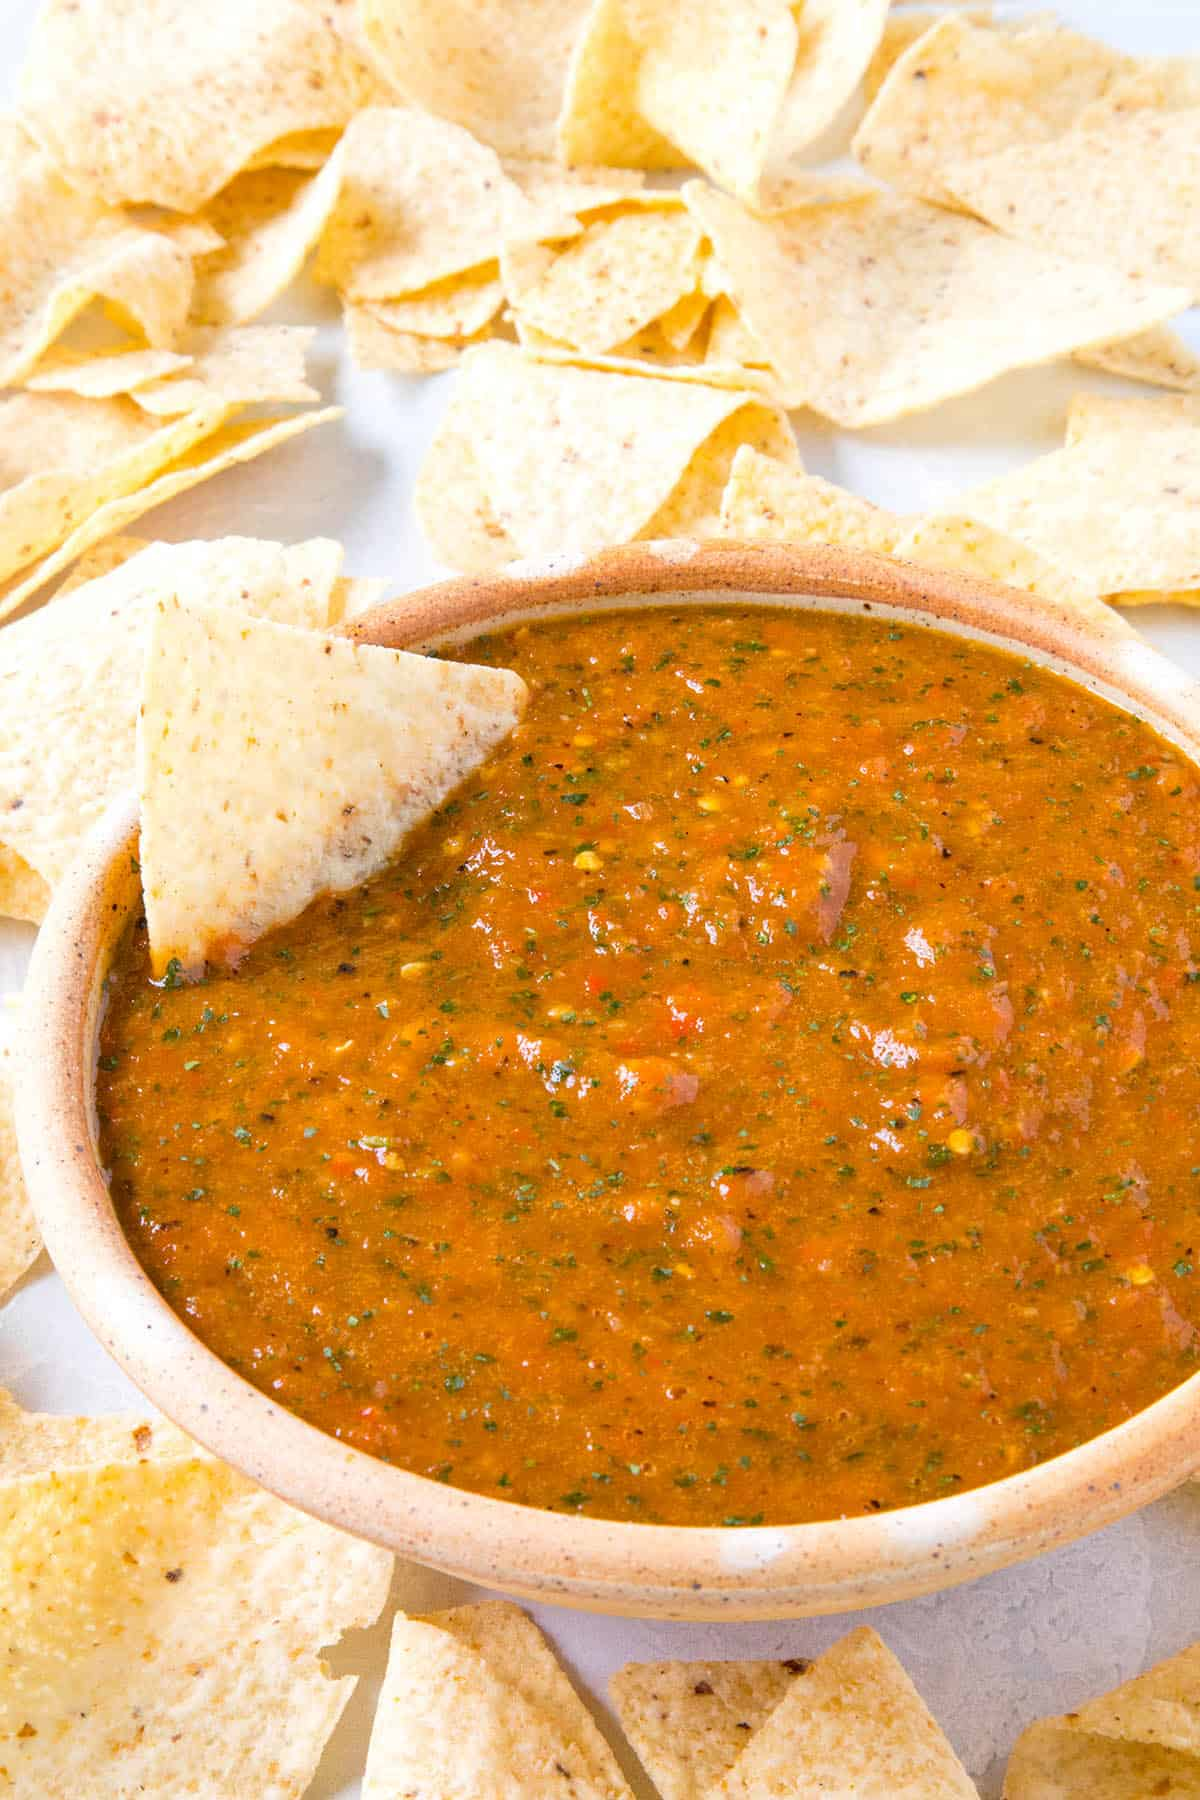 Roasted Mango-Habanero Salsa in a bowl with chips, ready to serve